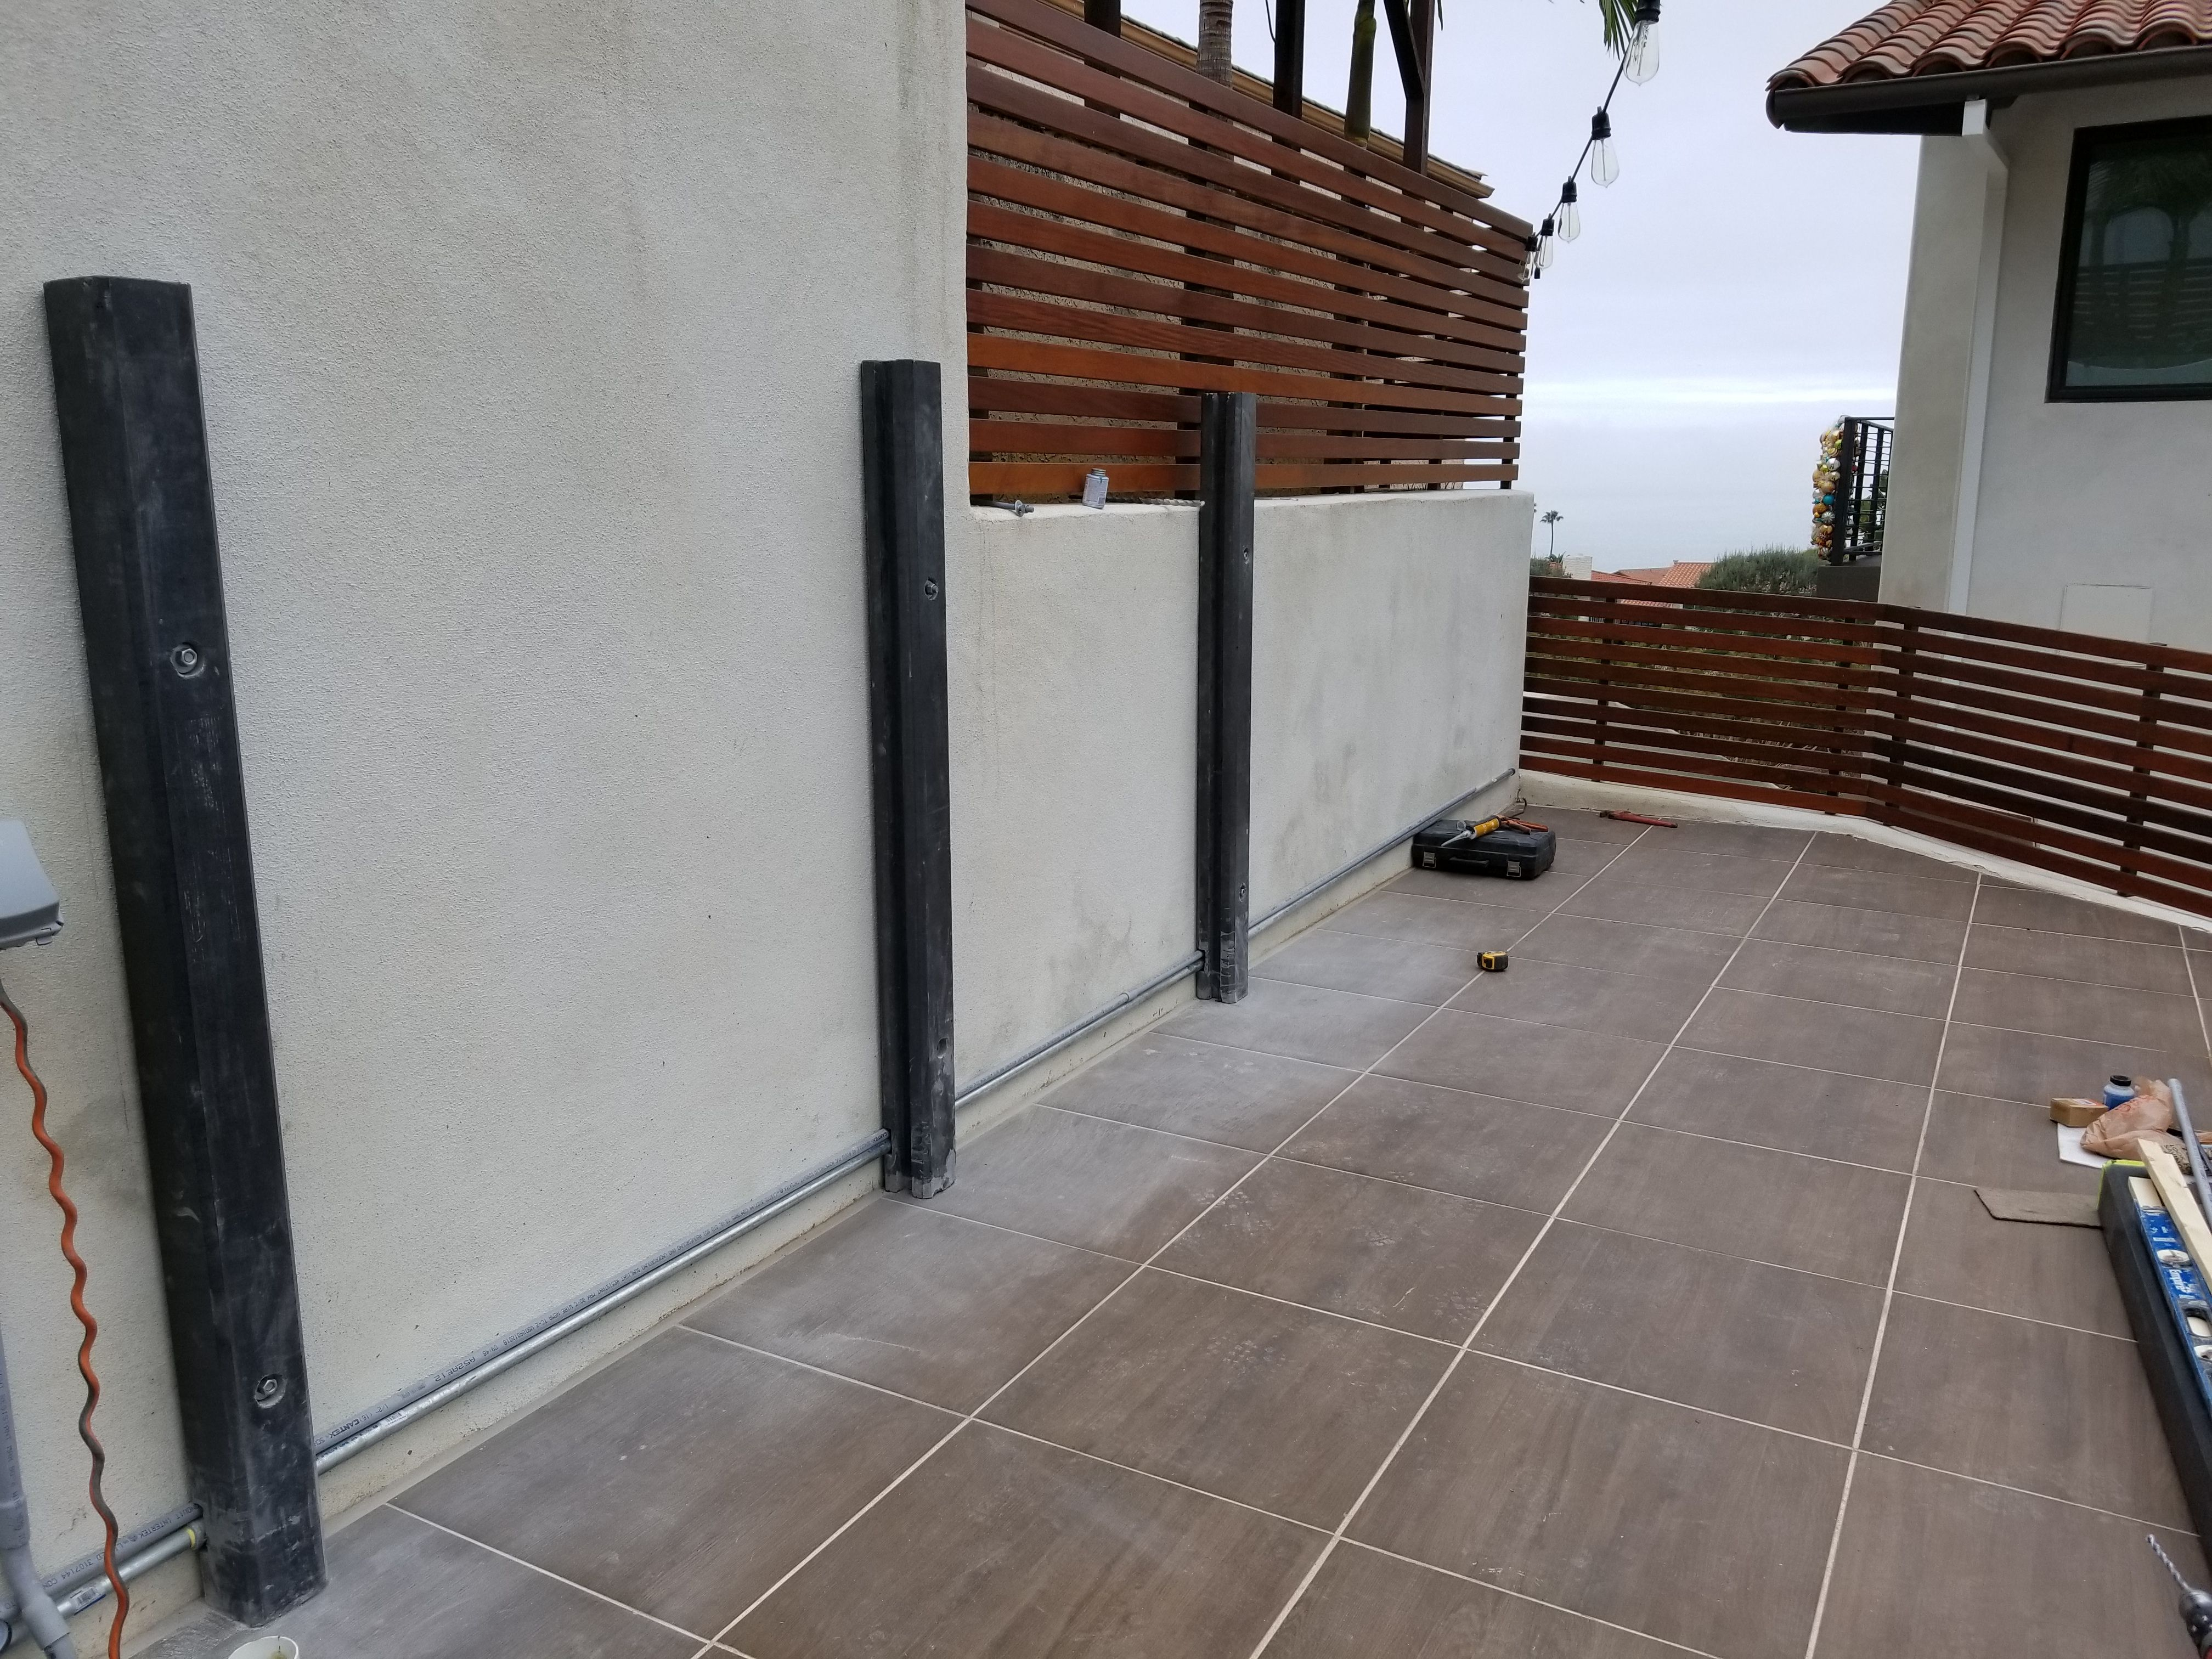 Wwoo California Palos Verdes Estates Installation Process First Step Run Gas Line And Electrical Co Outdoor Kitchen Concrete Outdoor Kitchen Fencing Gates